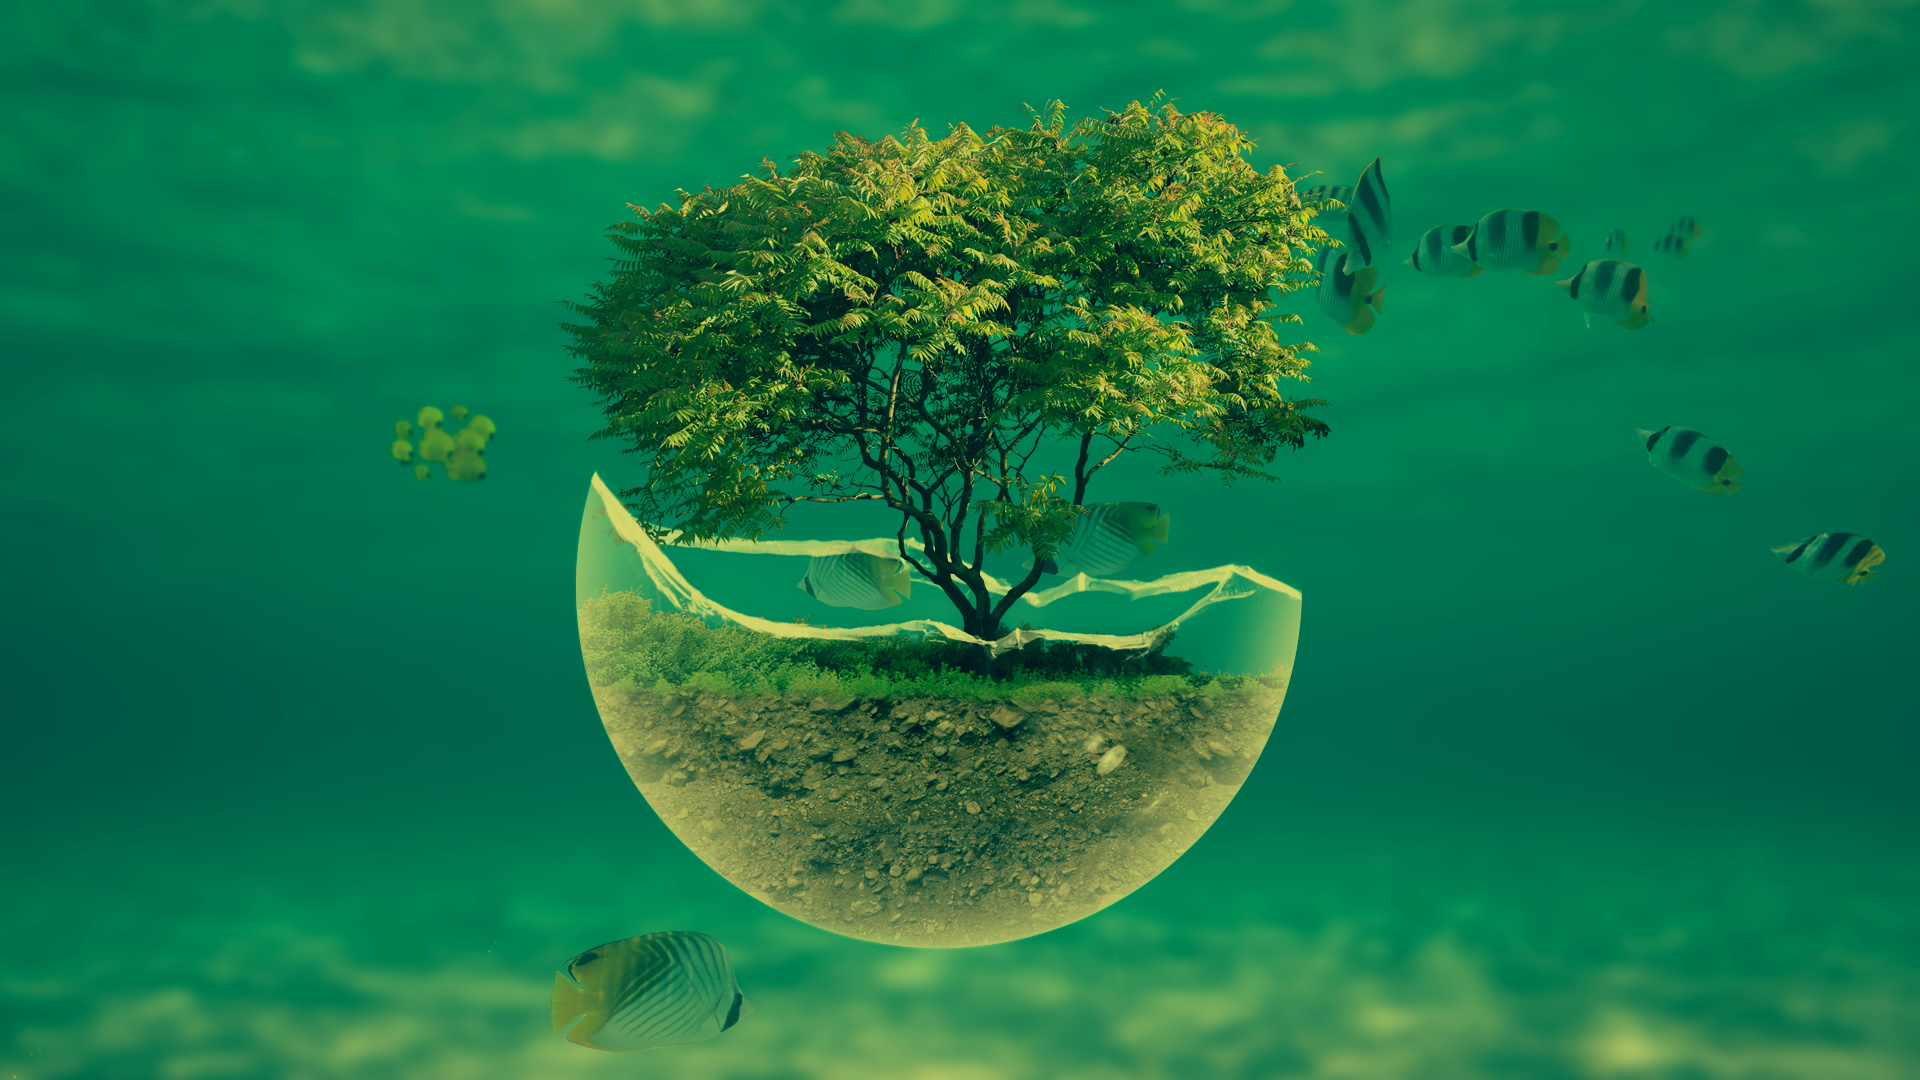 1920x1080 underwater tree widescreen hd abstract desktop wallpaper 1920x1080